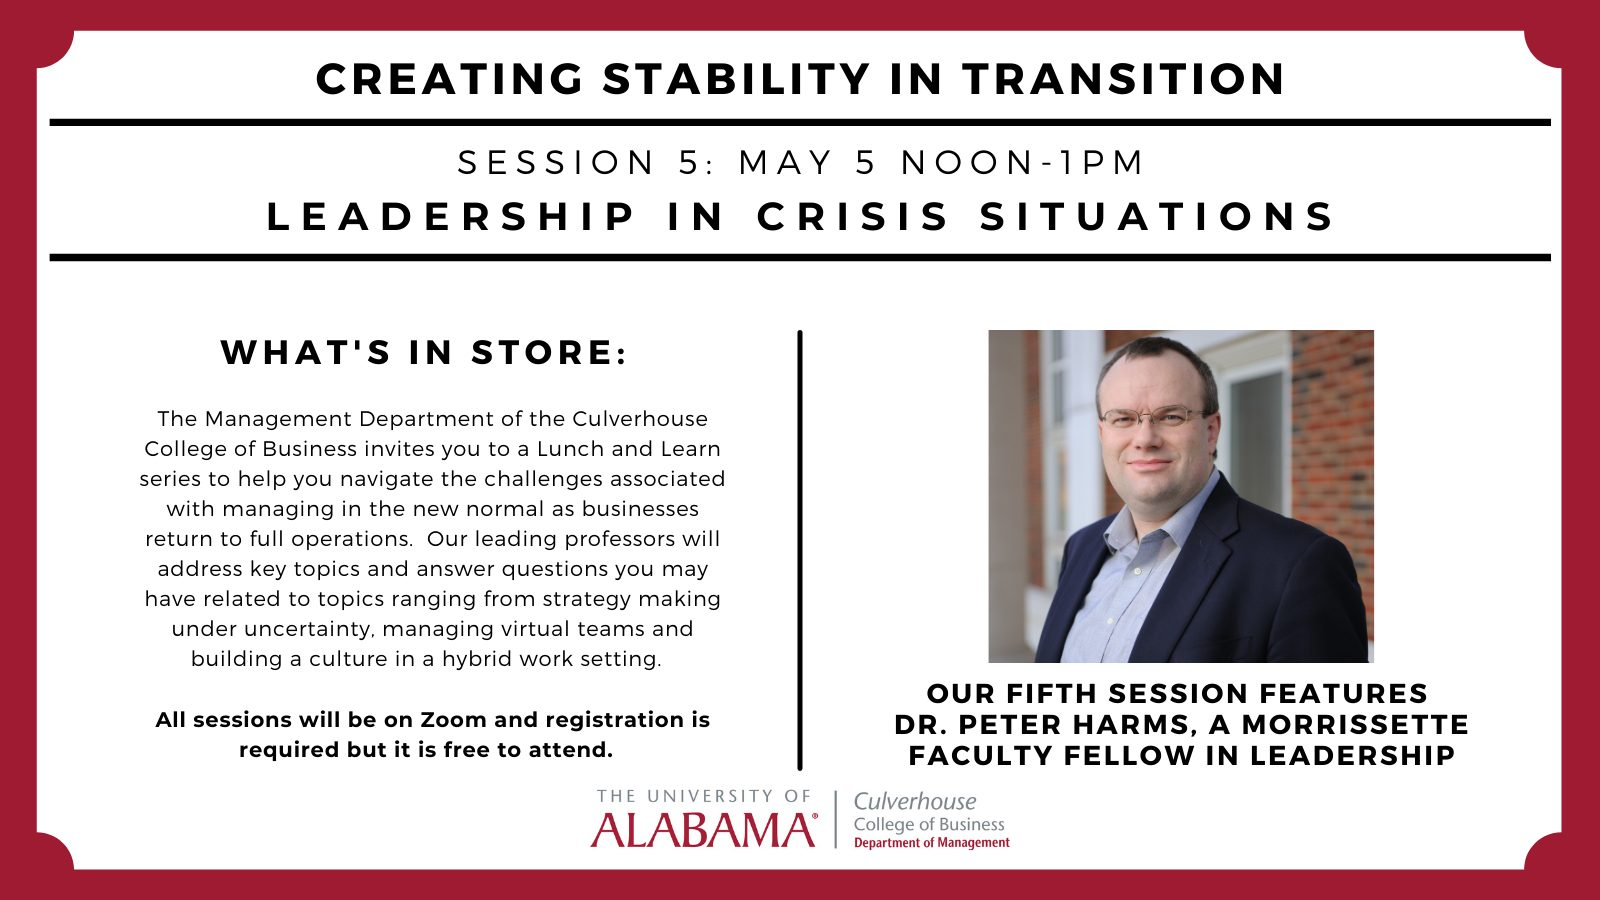 Dr. Peter Harms Session in the Creating Stability in Transition Series